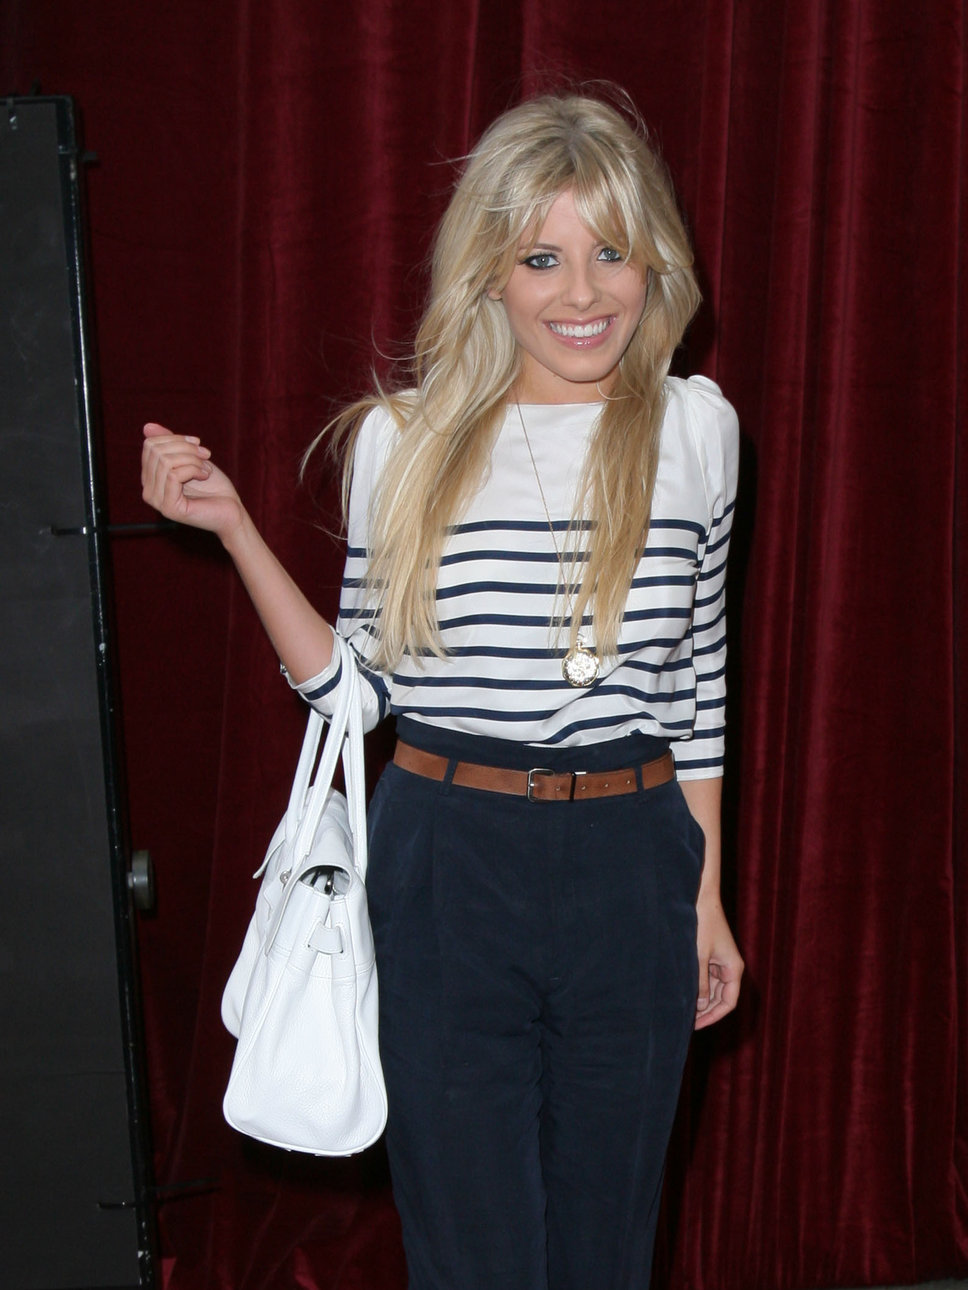 Mollie_king_sailor_top_pants_bjpg